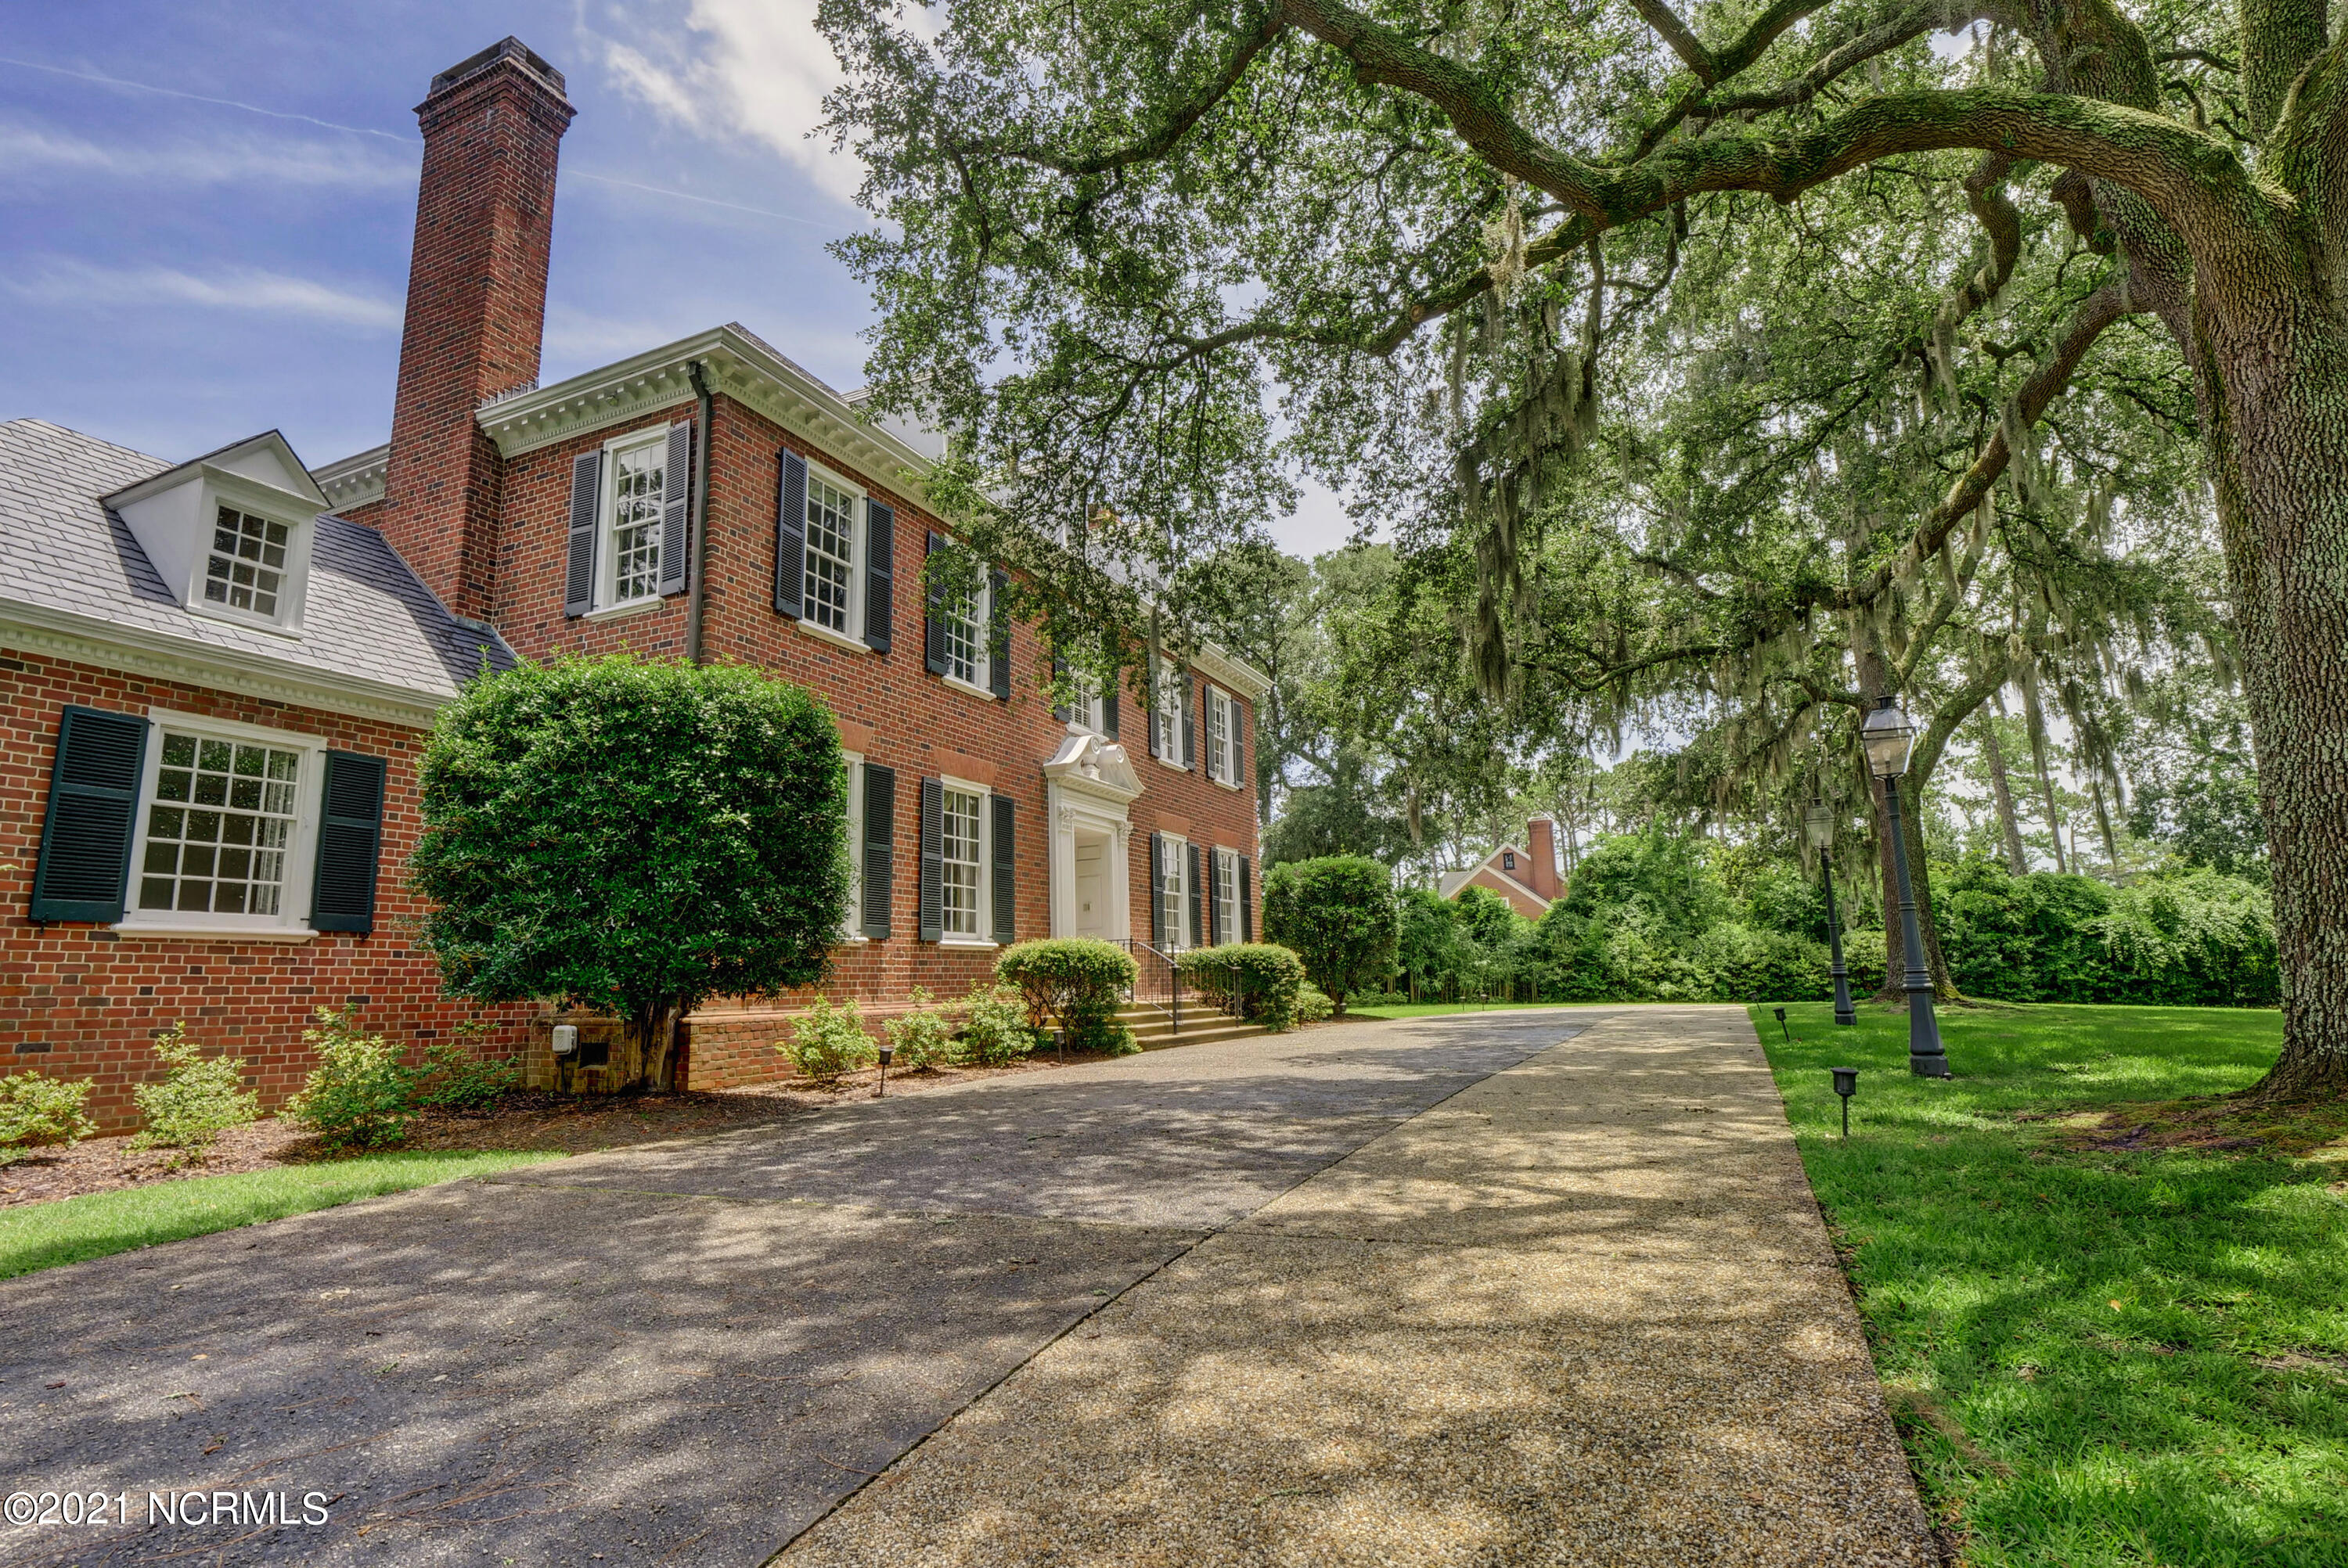 807 Forest Hills Drive, Wilmington, North Carolina 28403, 5 Bedrooms Bedrooms, 12 Rooms Rooms,4 BathroomsBathrooms,Single family residence,For sale,Forest Hills,100277211